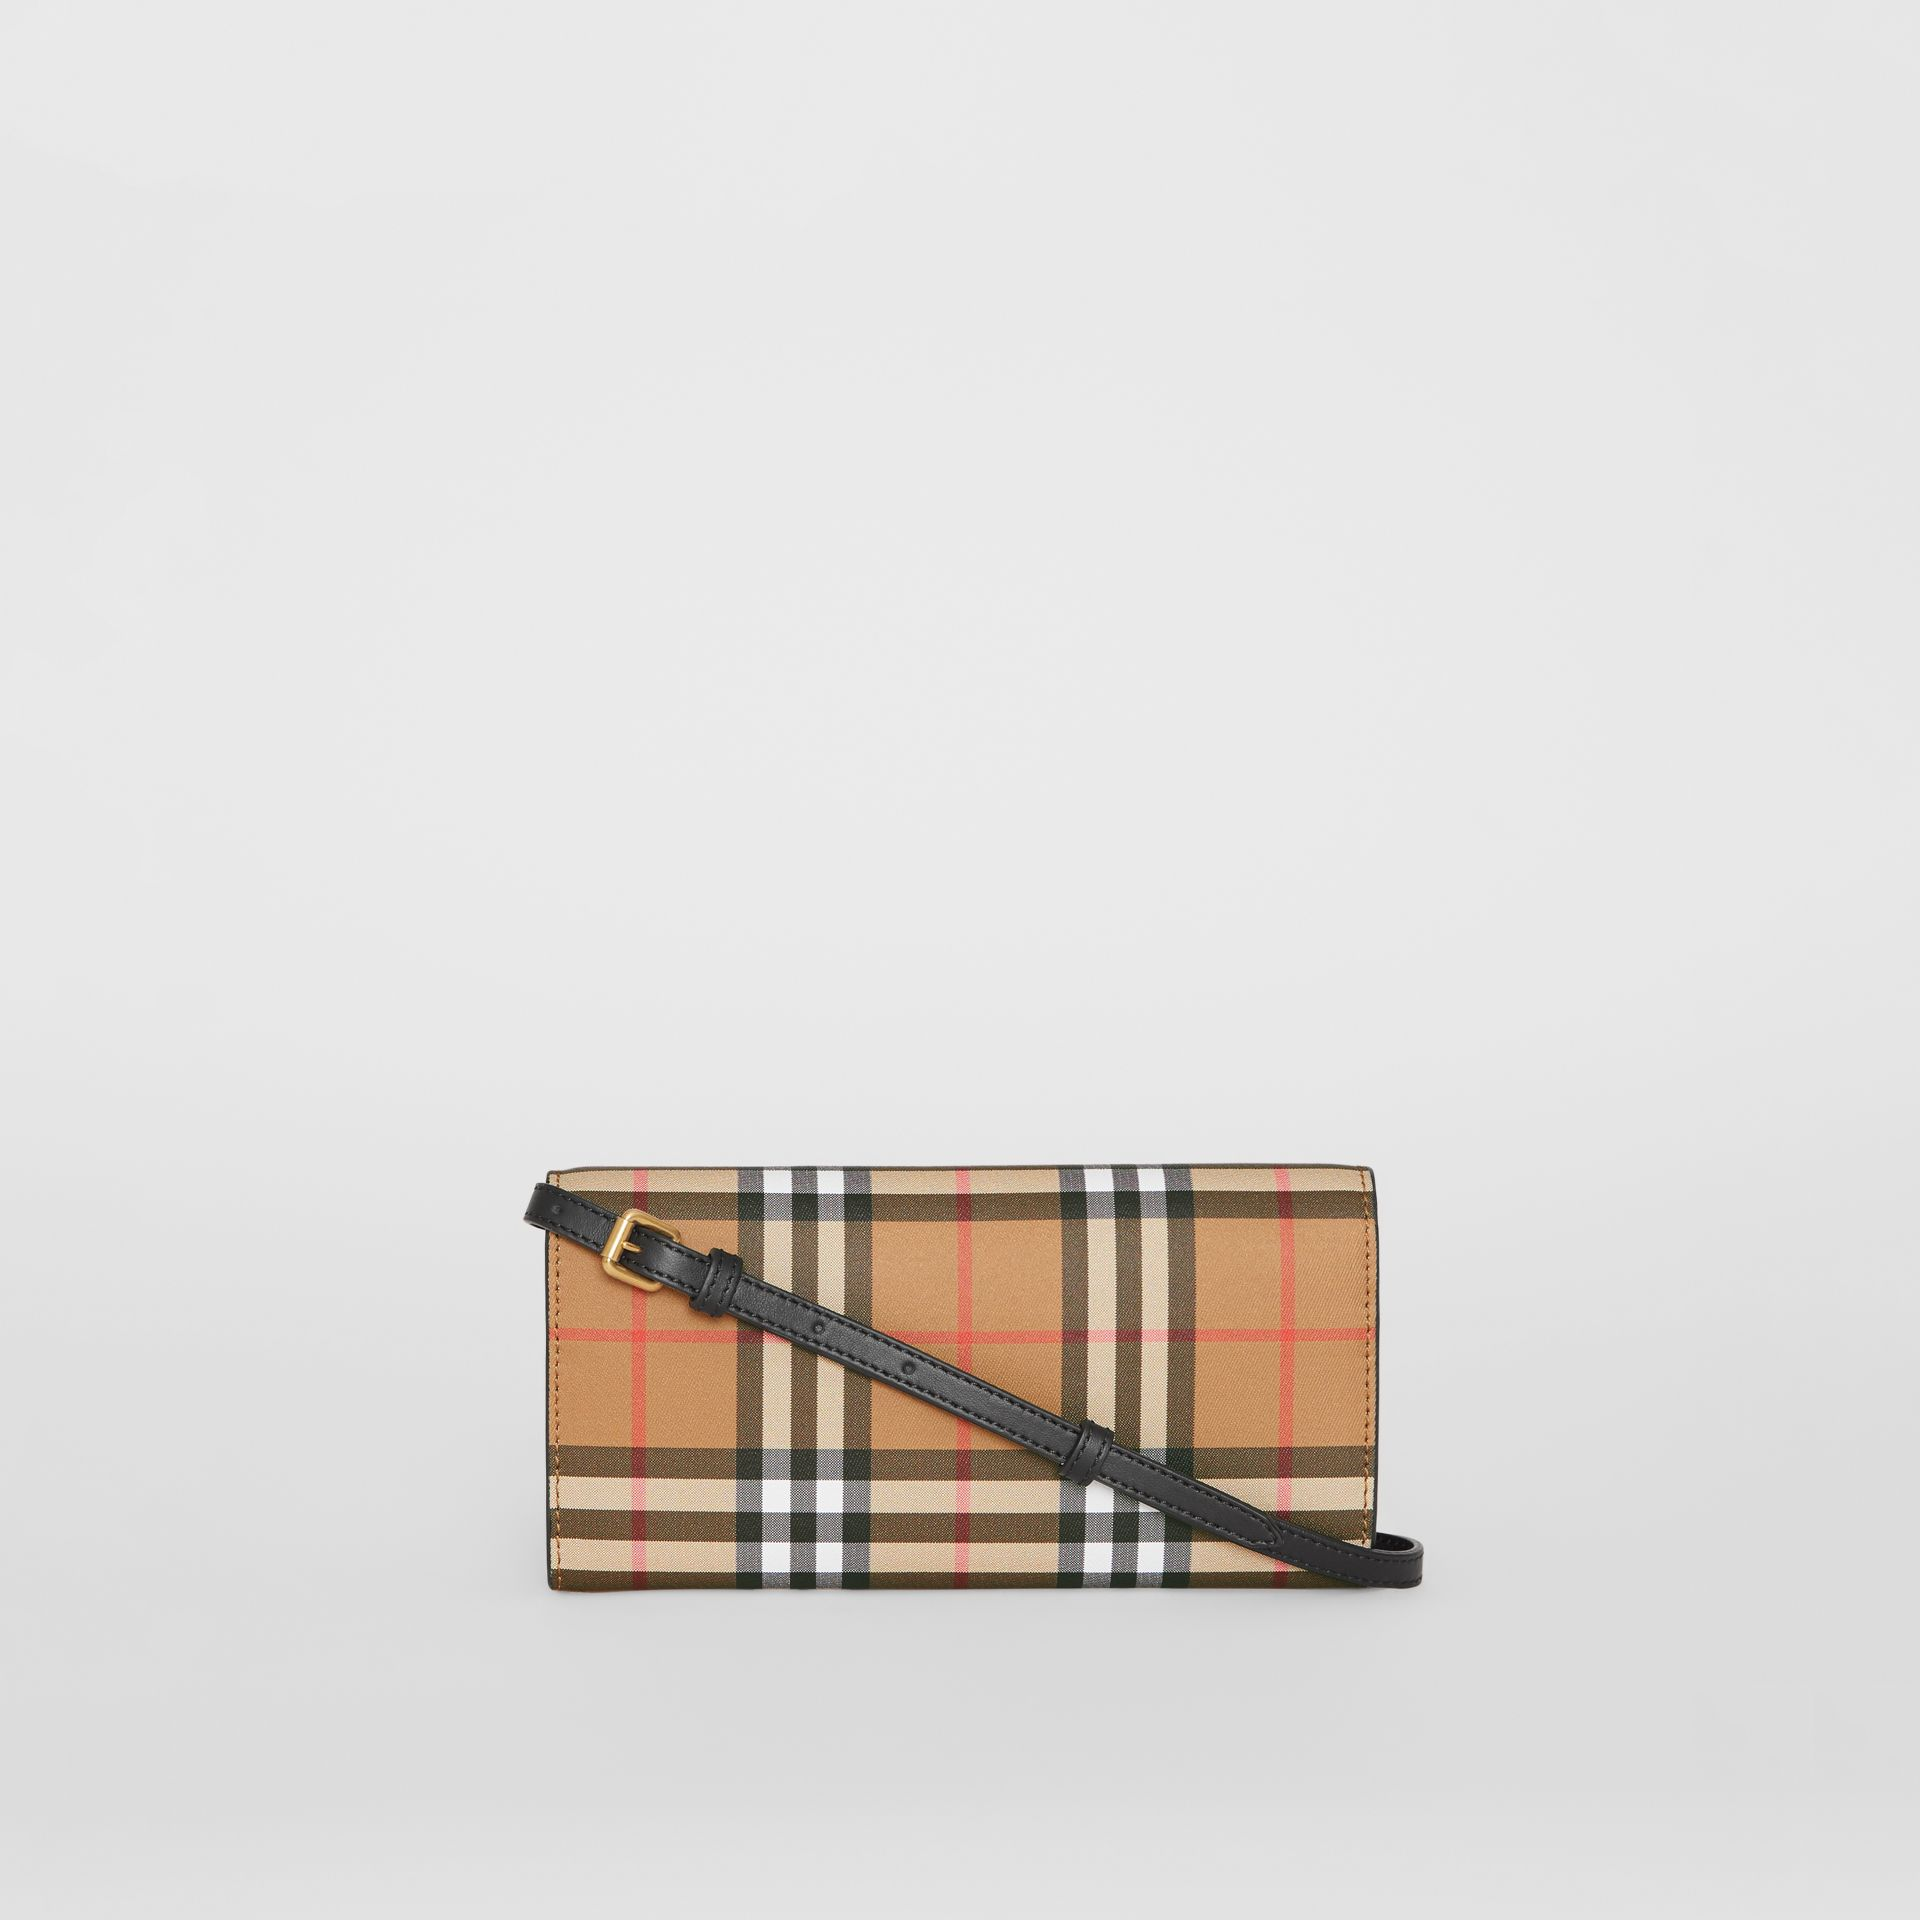 Detachable Strap Vintage Check Leather Wallet in Black - Women | Burberry United Kingdom - gallery image 7